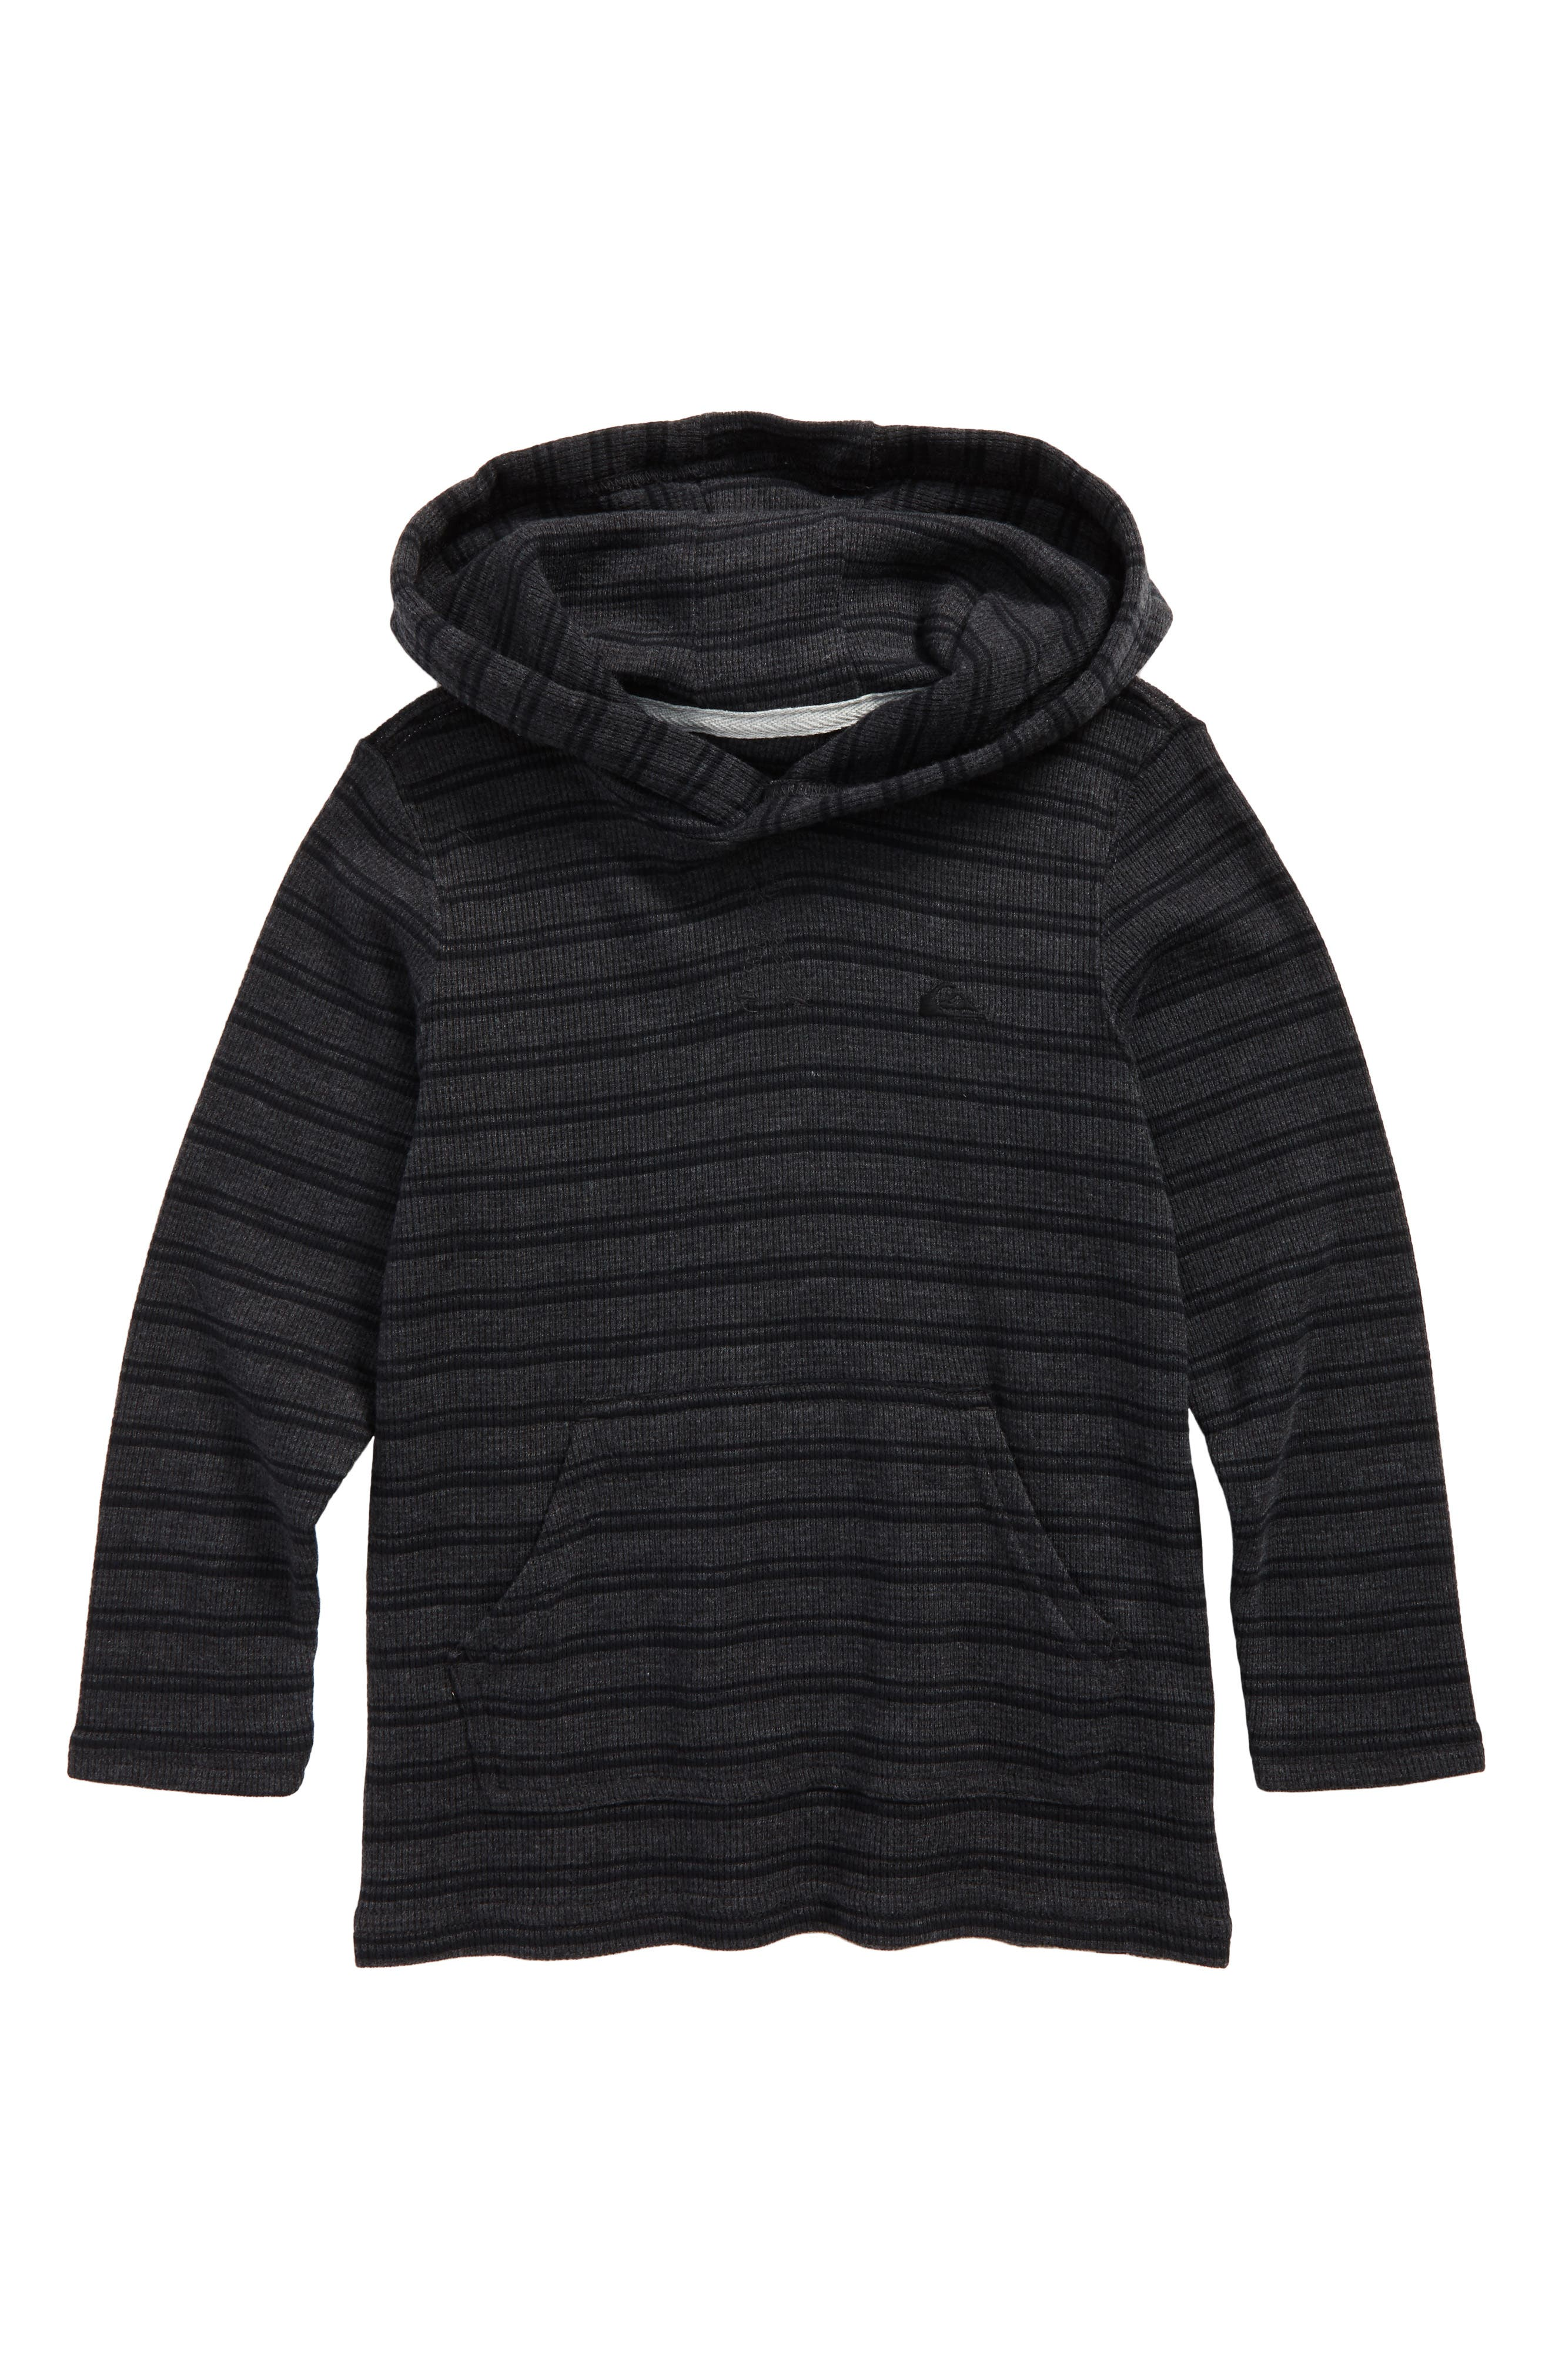 Alternate Image 1 Selected - Quiksilver Ocean Surface Thermal Hoodie (Toddler Boys & Little Boys)